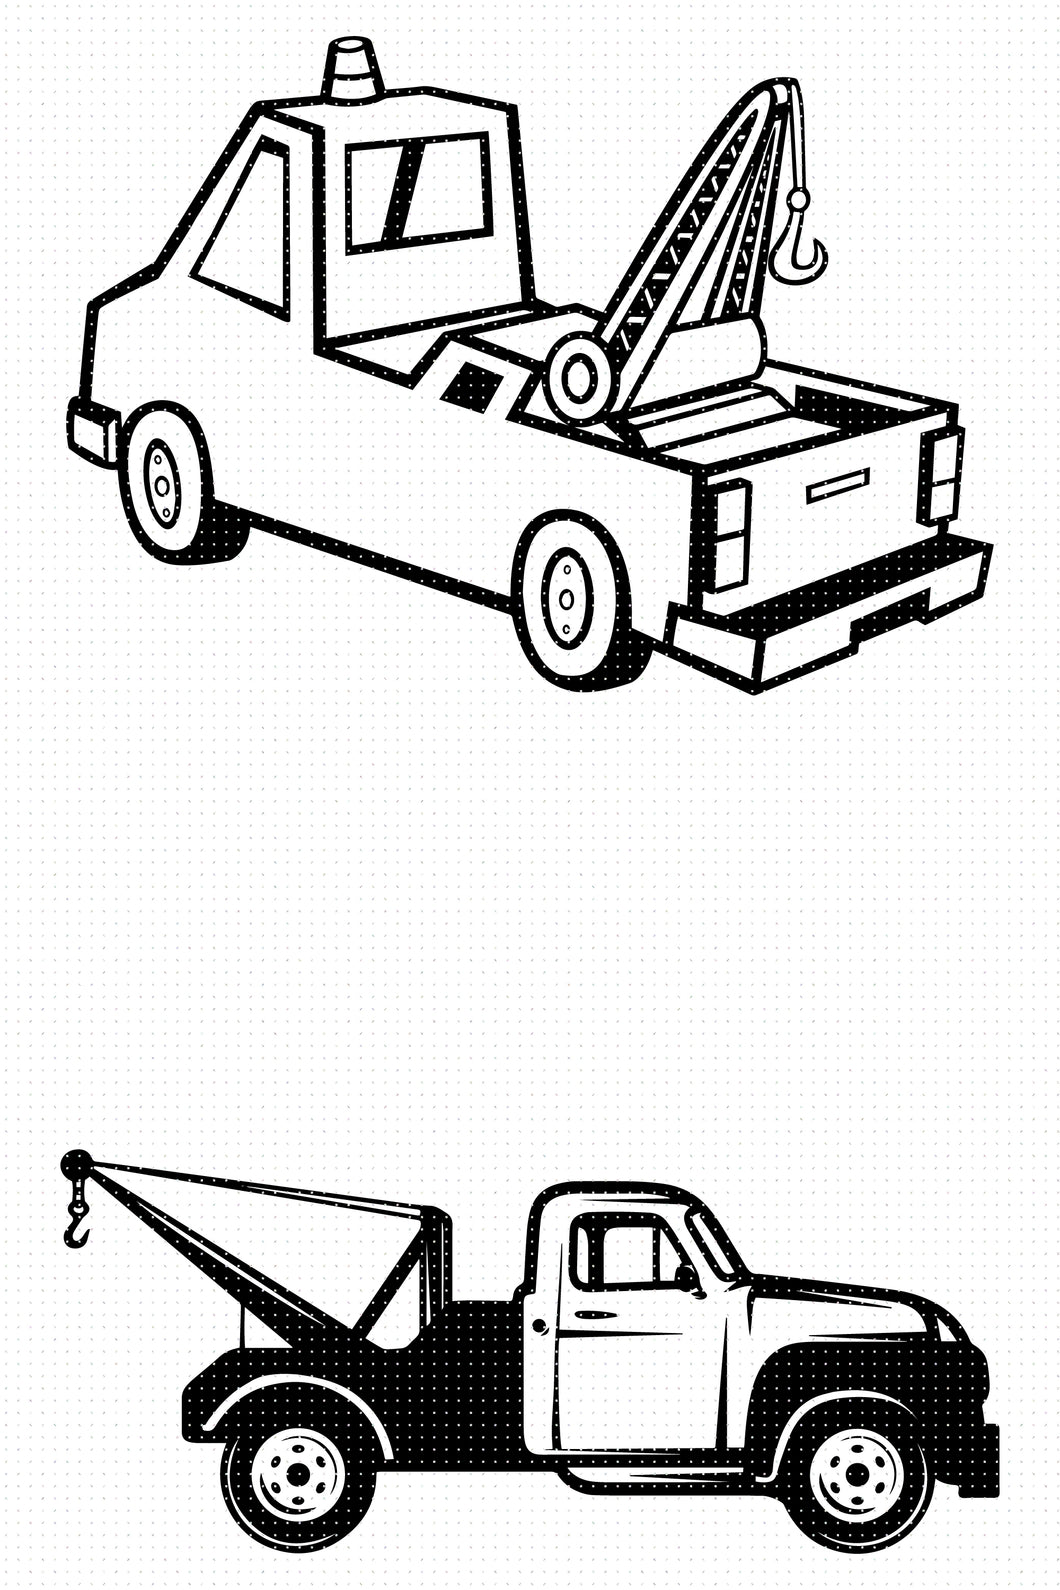 FREE tow truck for Personal Use SVG, PNG clipart, DXF, clipart, EPS, vector cut file instant download